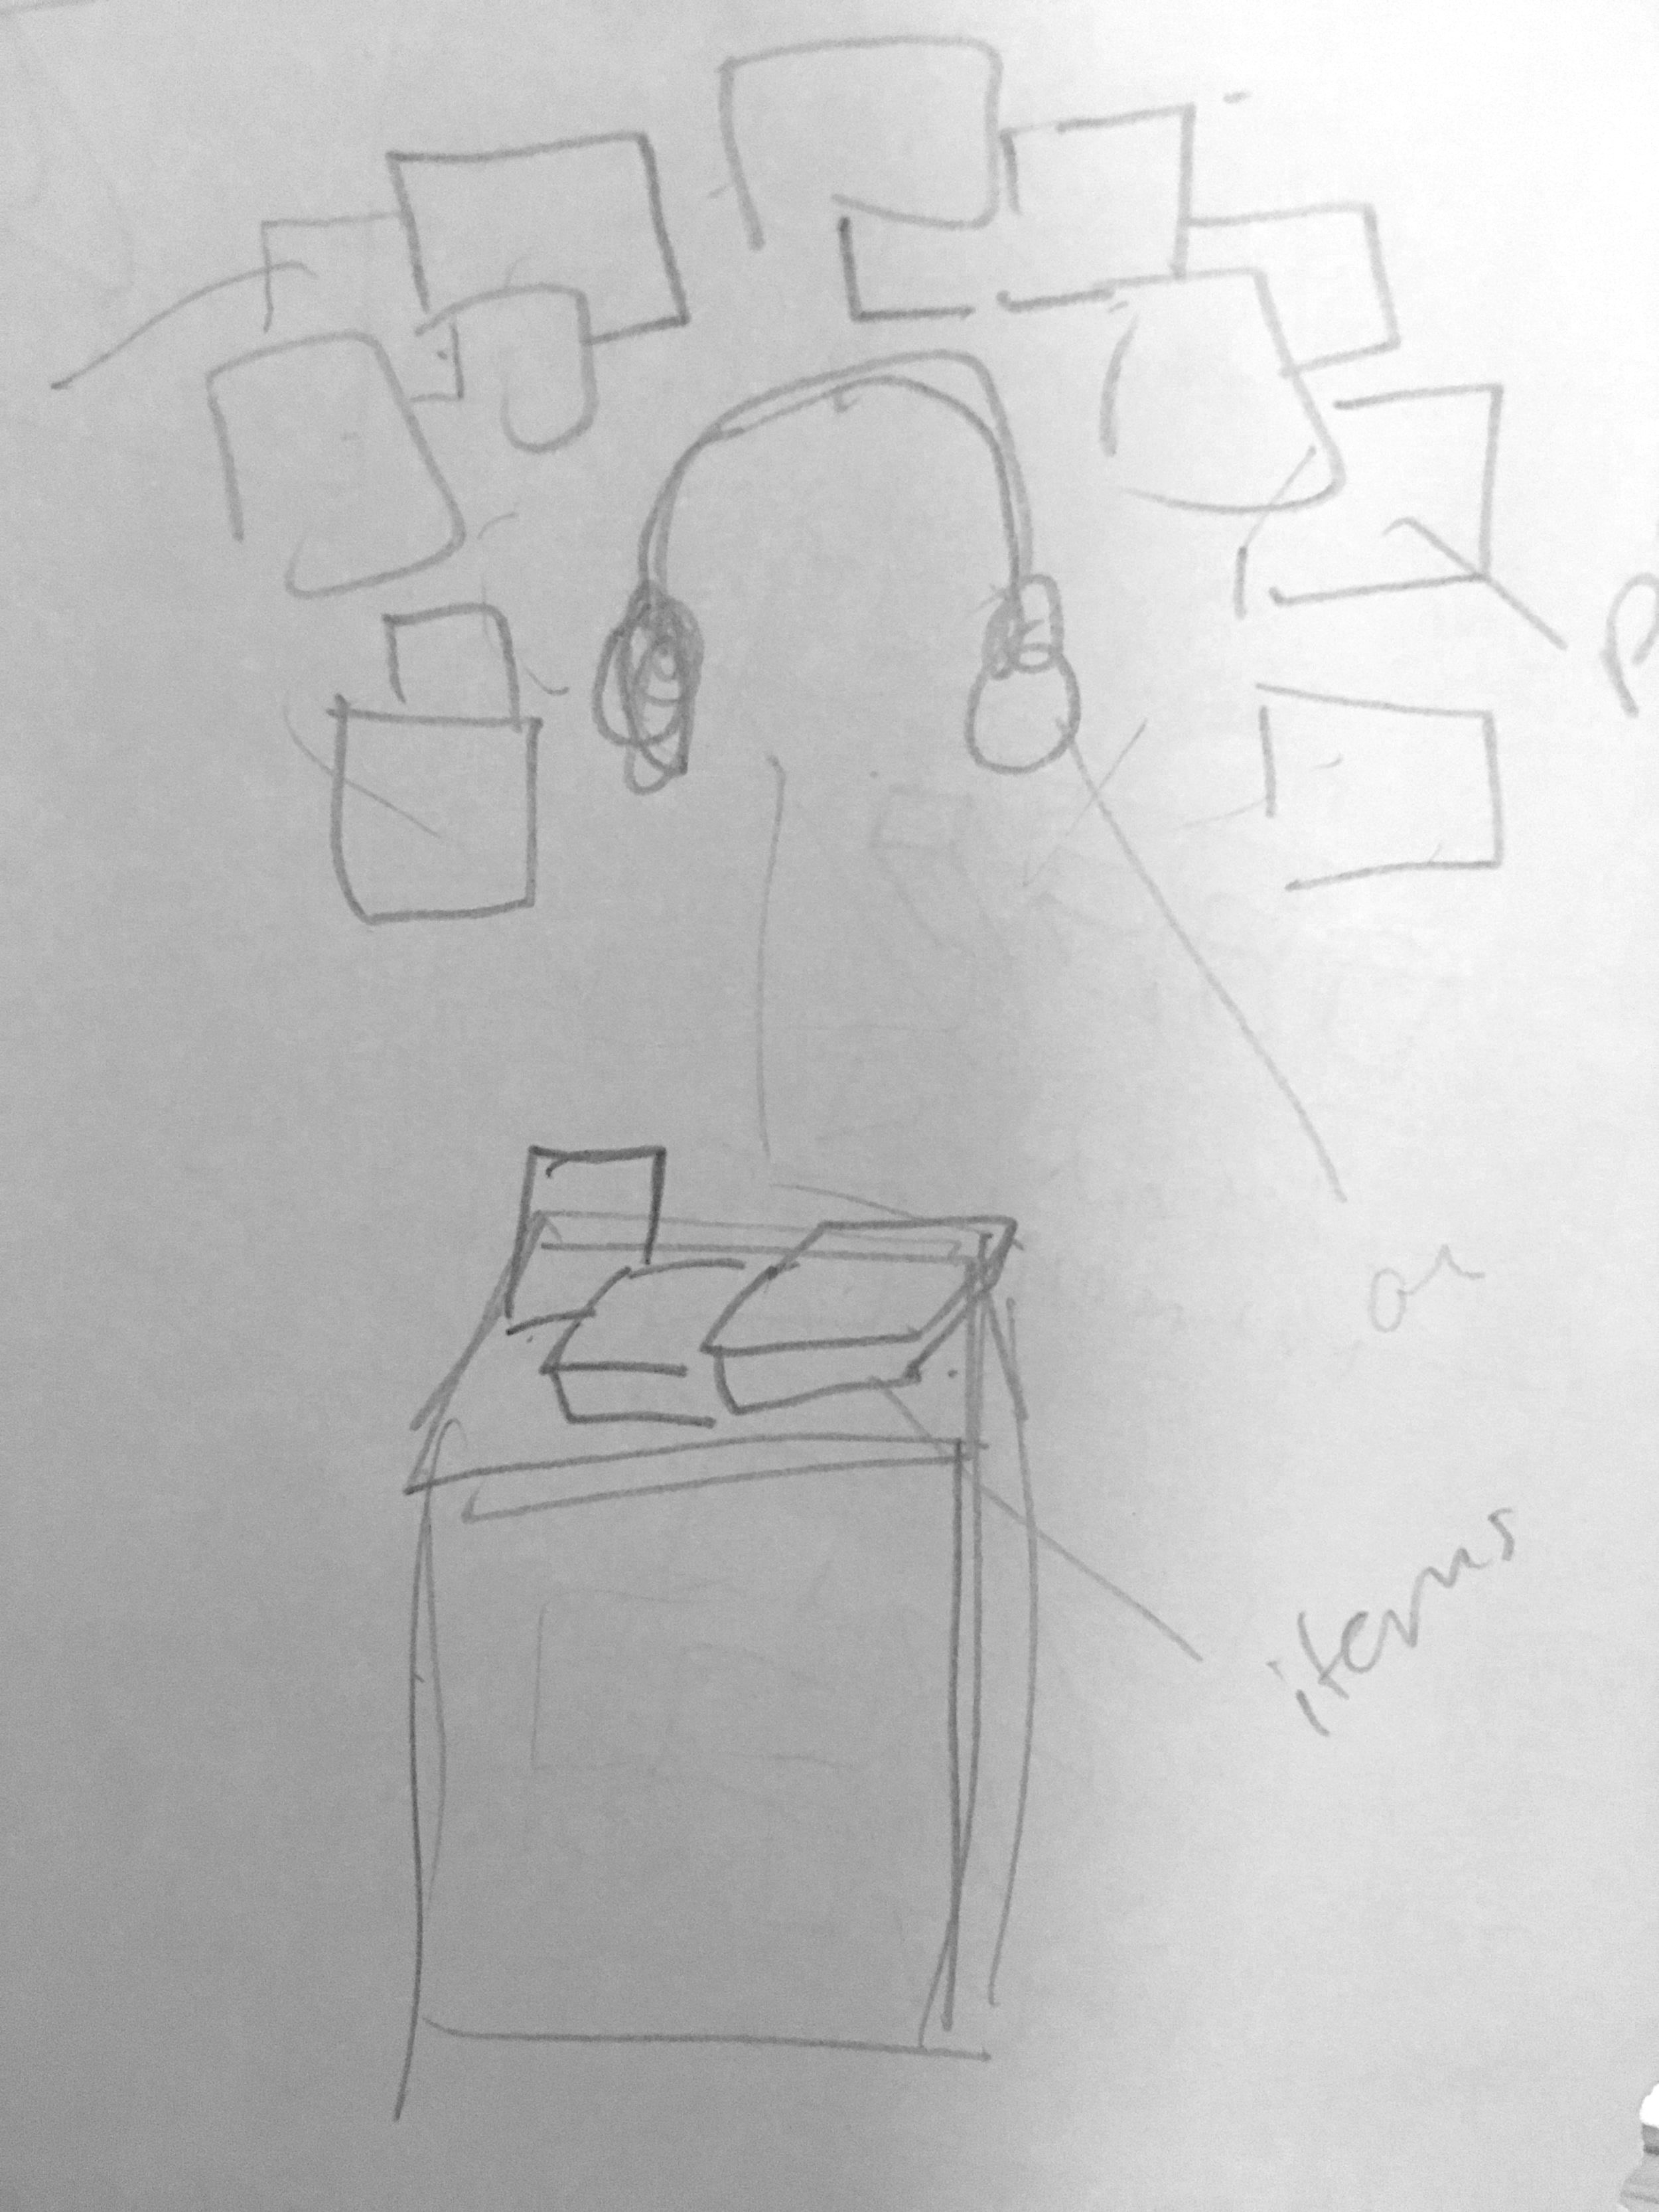 Listening station sketch with objects from Abby - her books and notes from our field research with quotes posted on eye level.